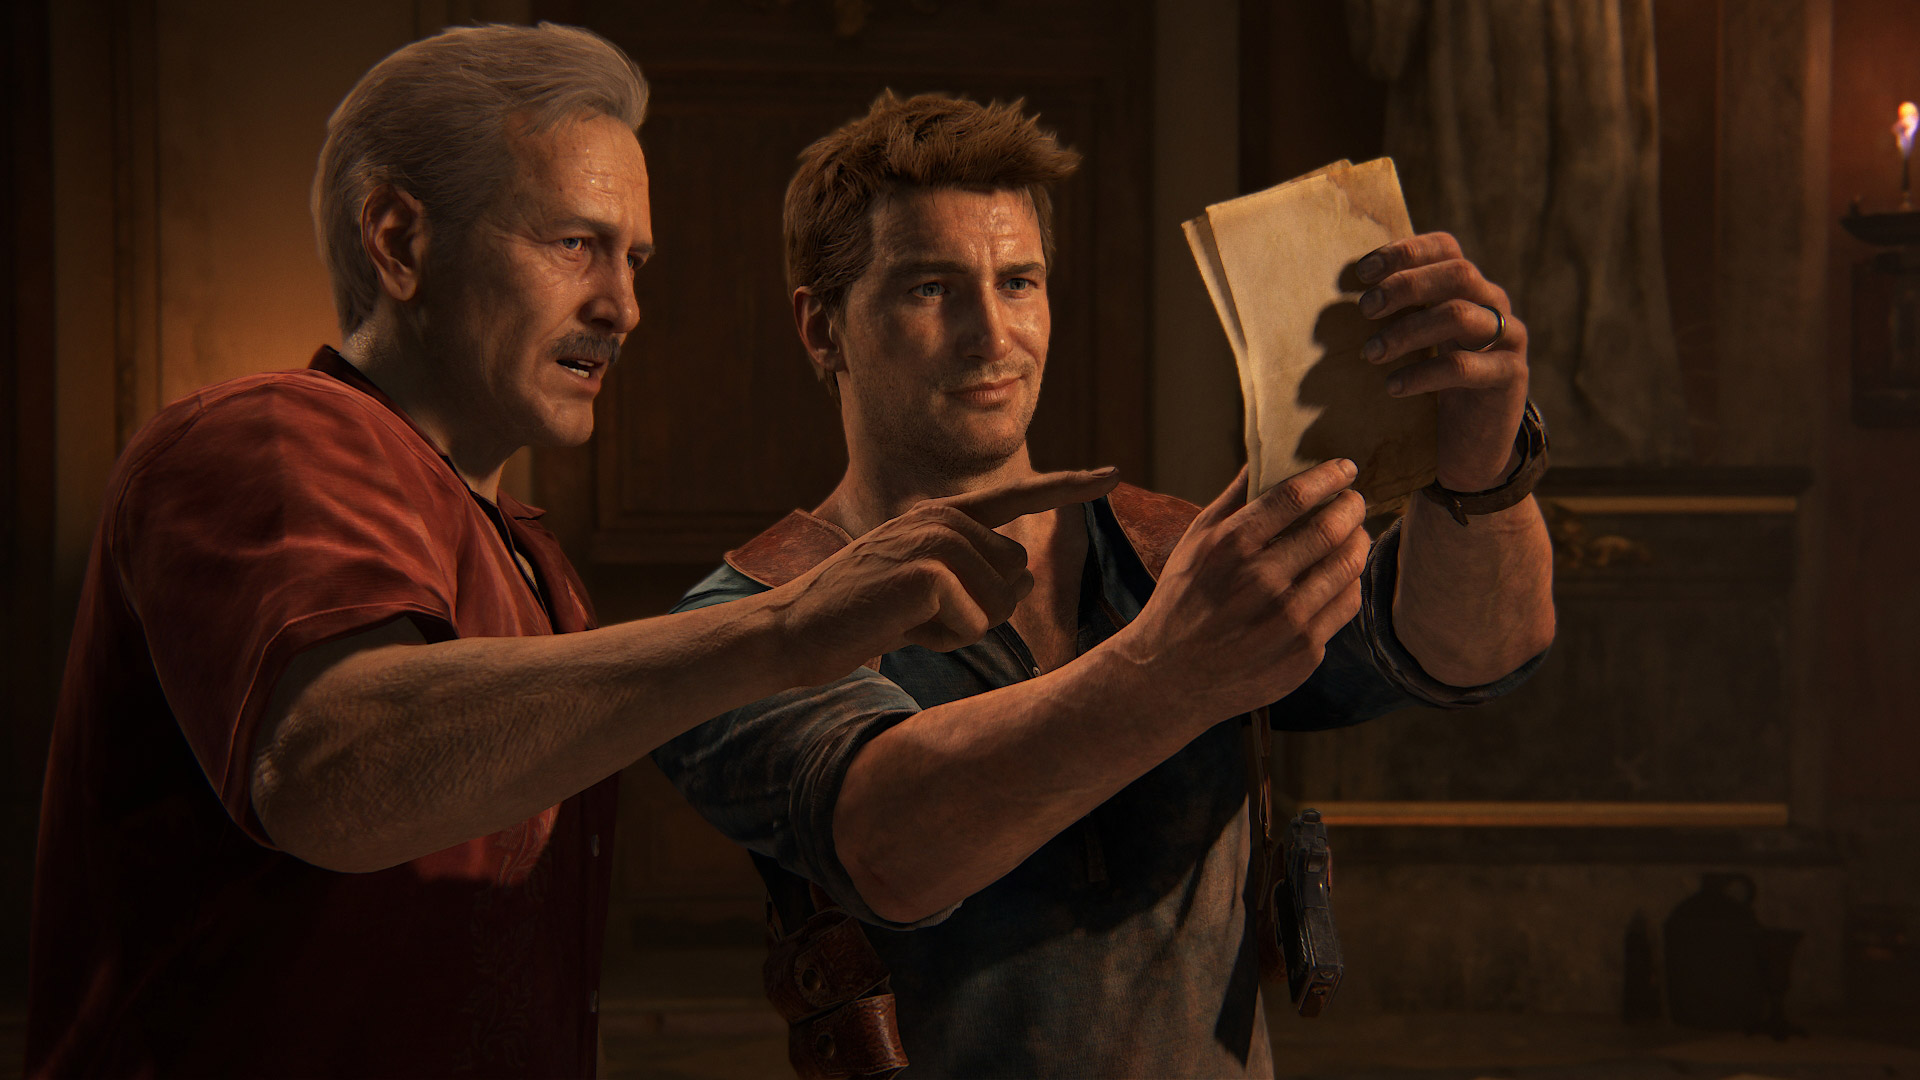 Uncharted 4: A Thief's End - Sully and Nate examine documents